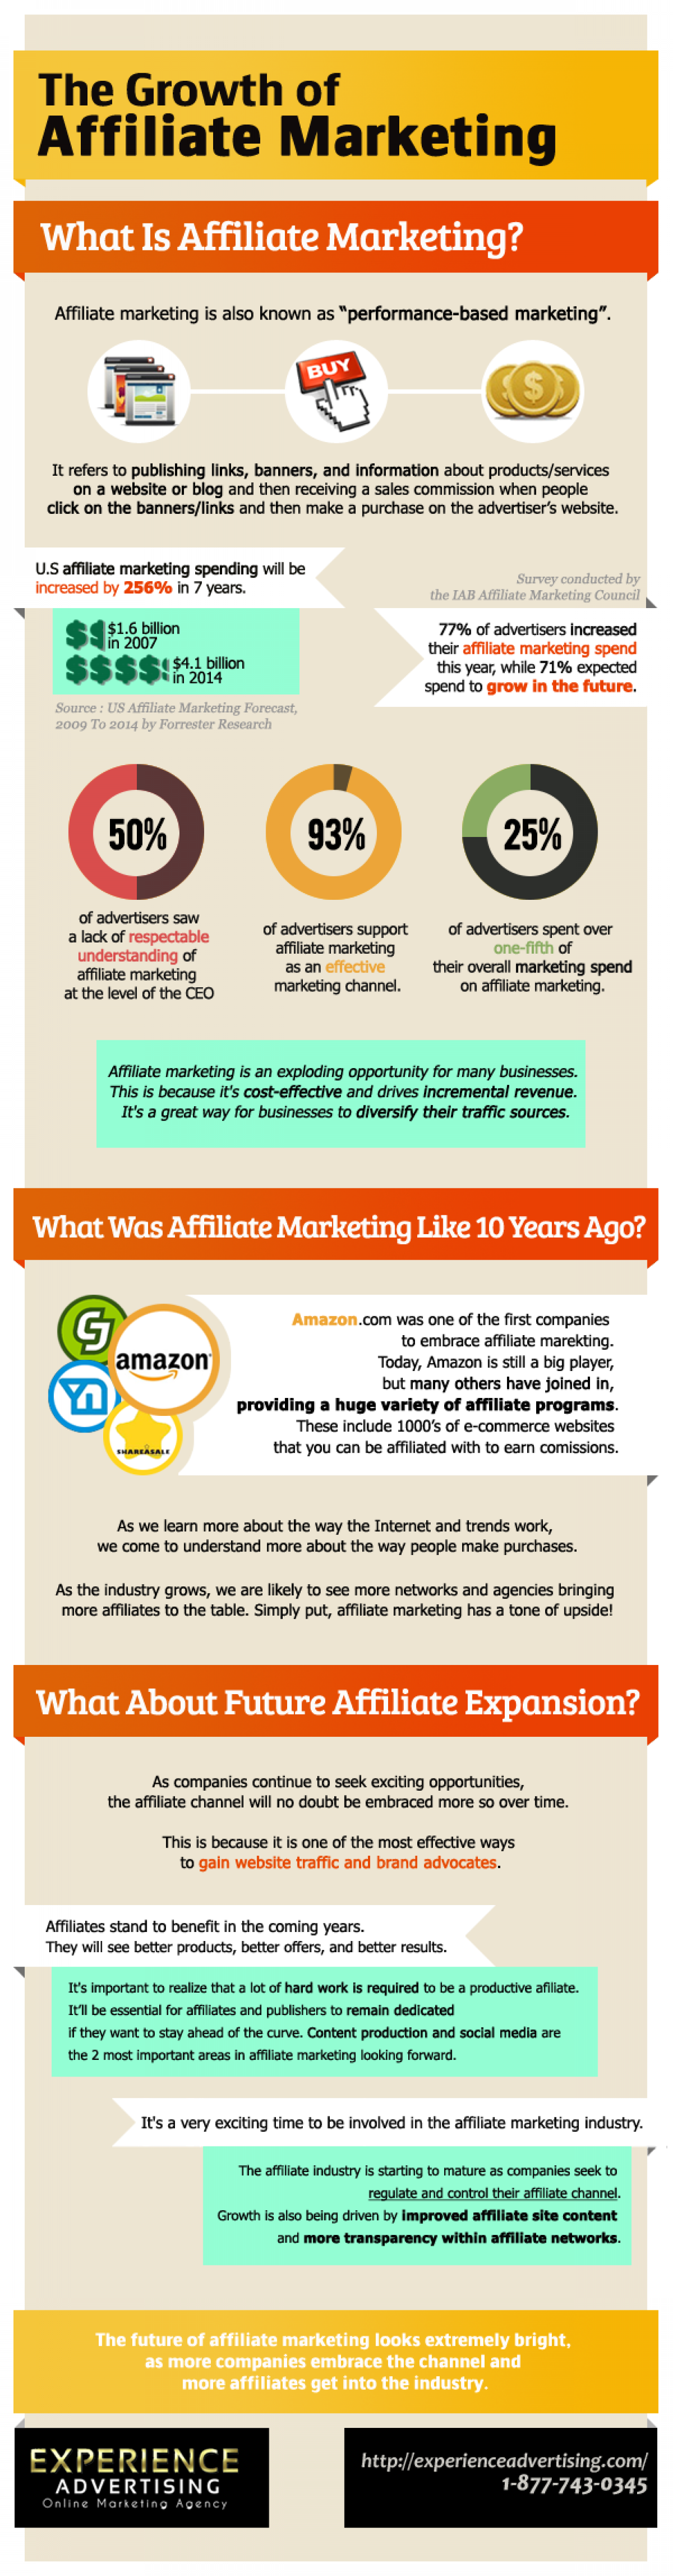 The Growth of Affiliate Marketing Infographic